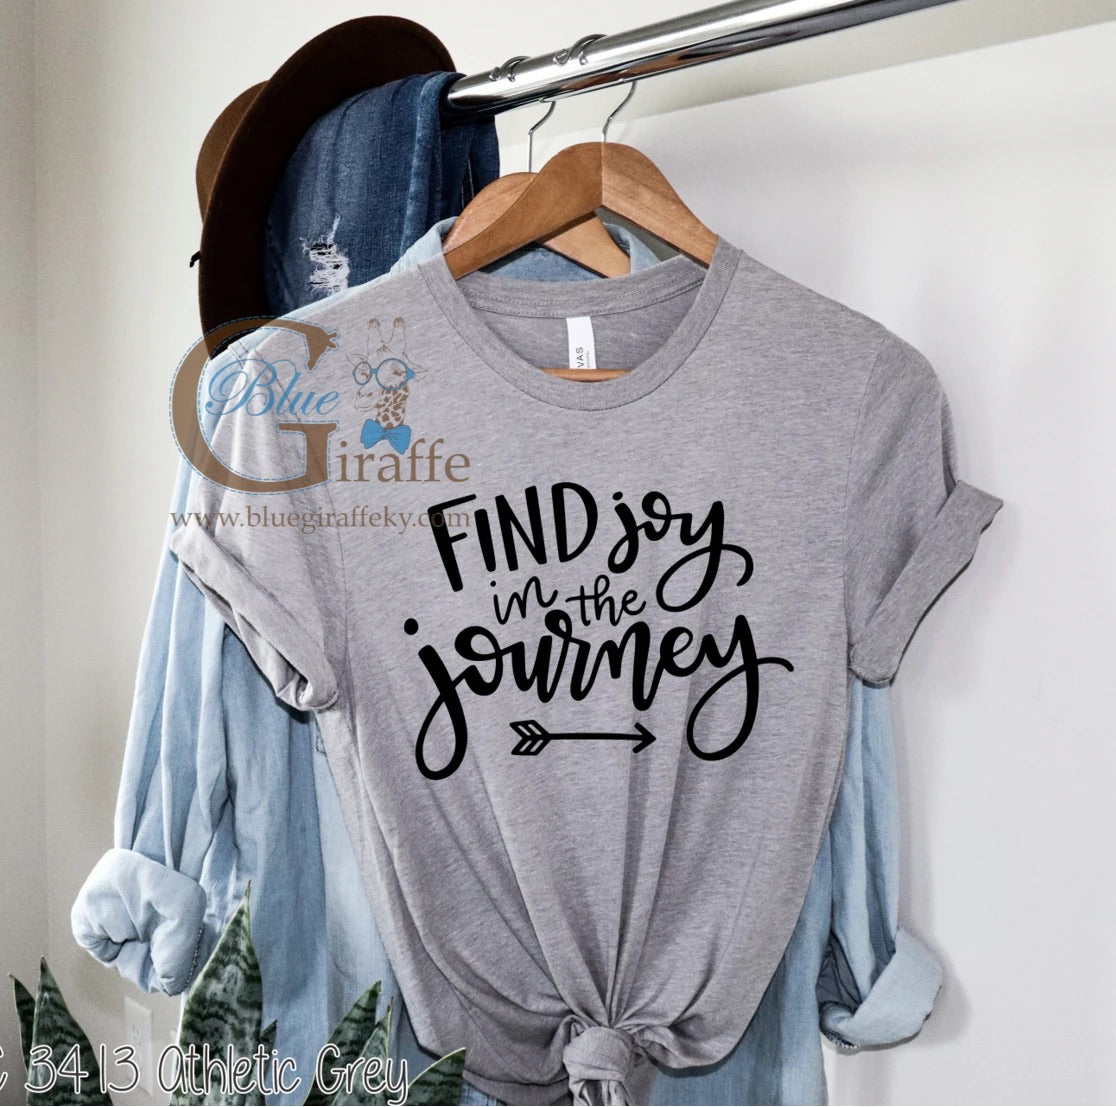 Find Joy in the Journey Tee